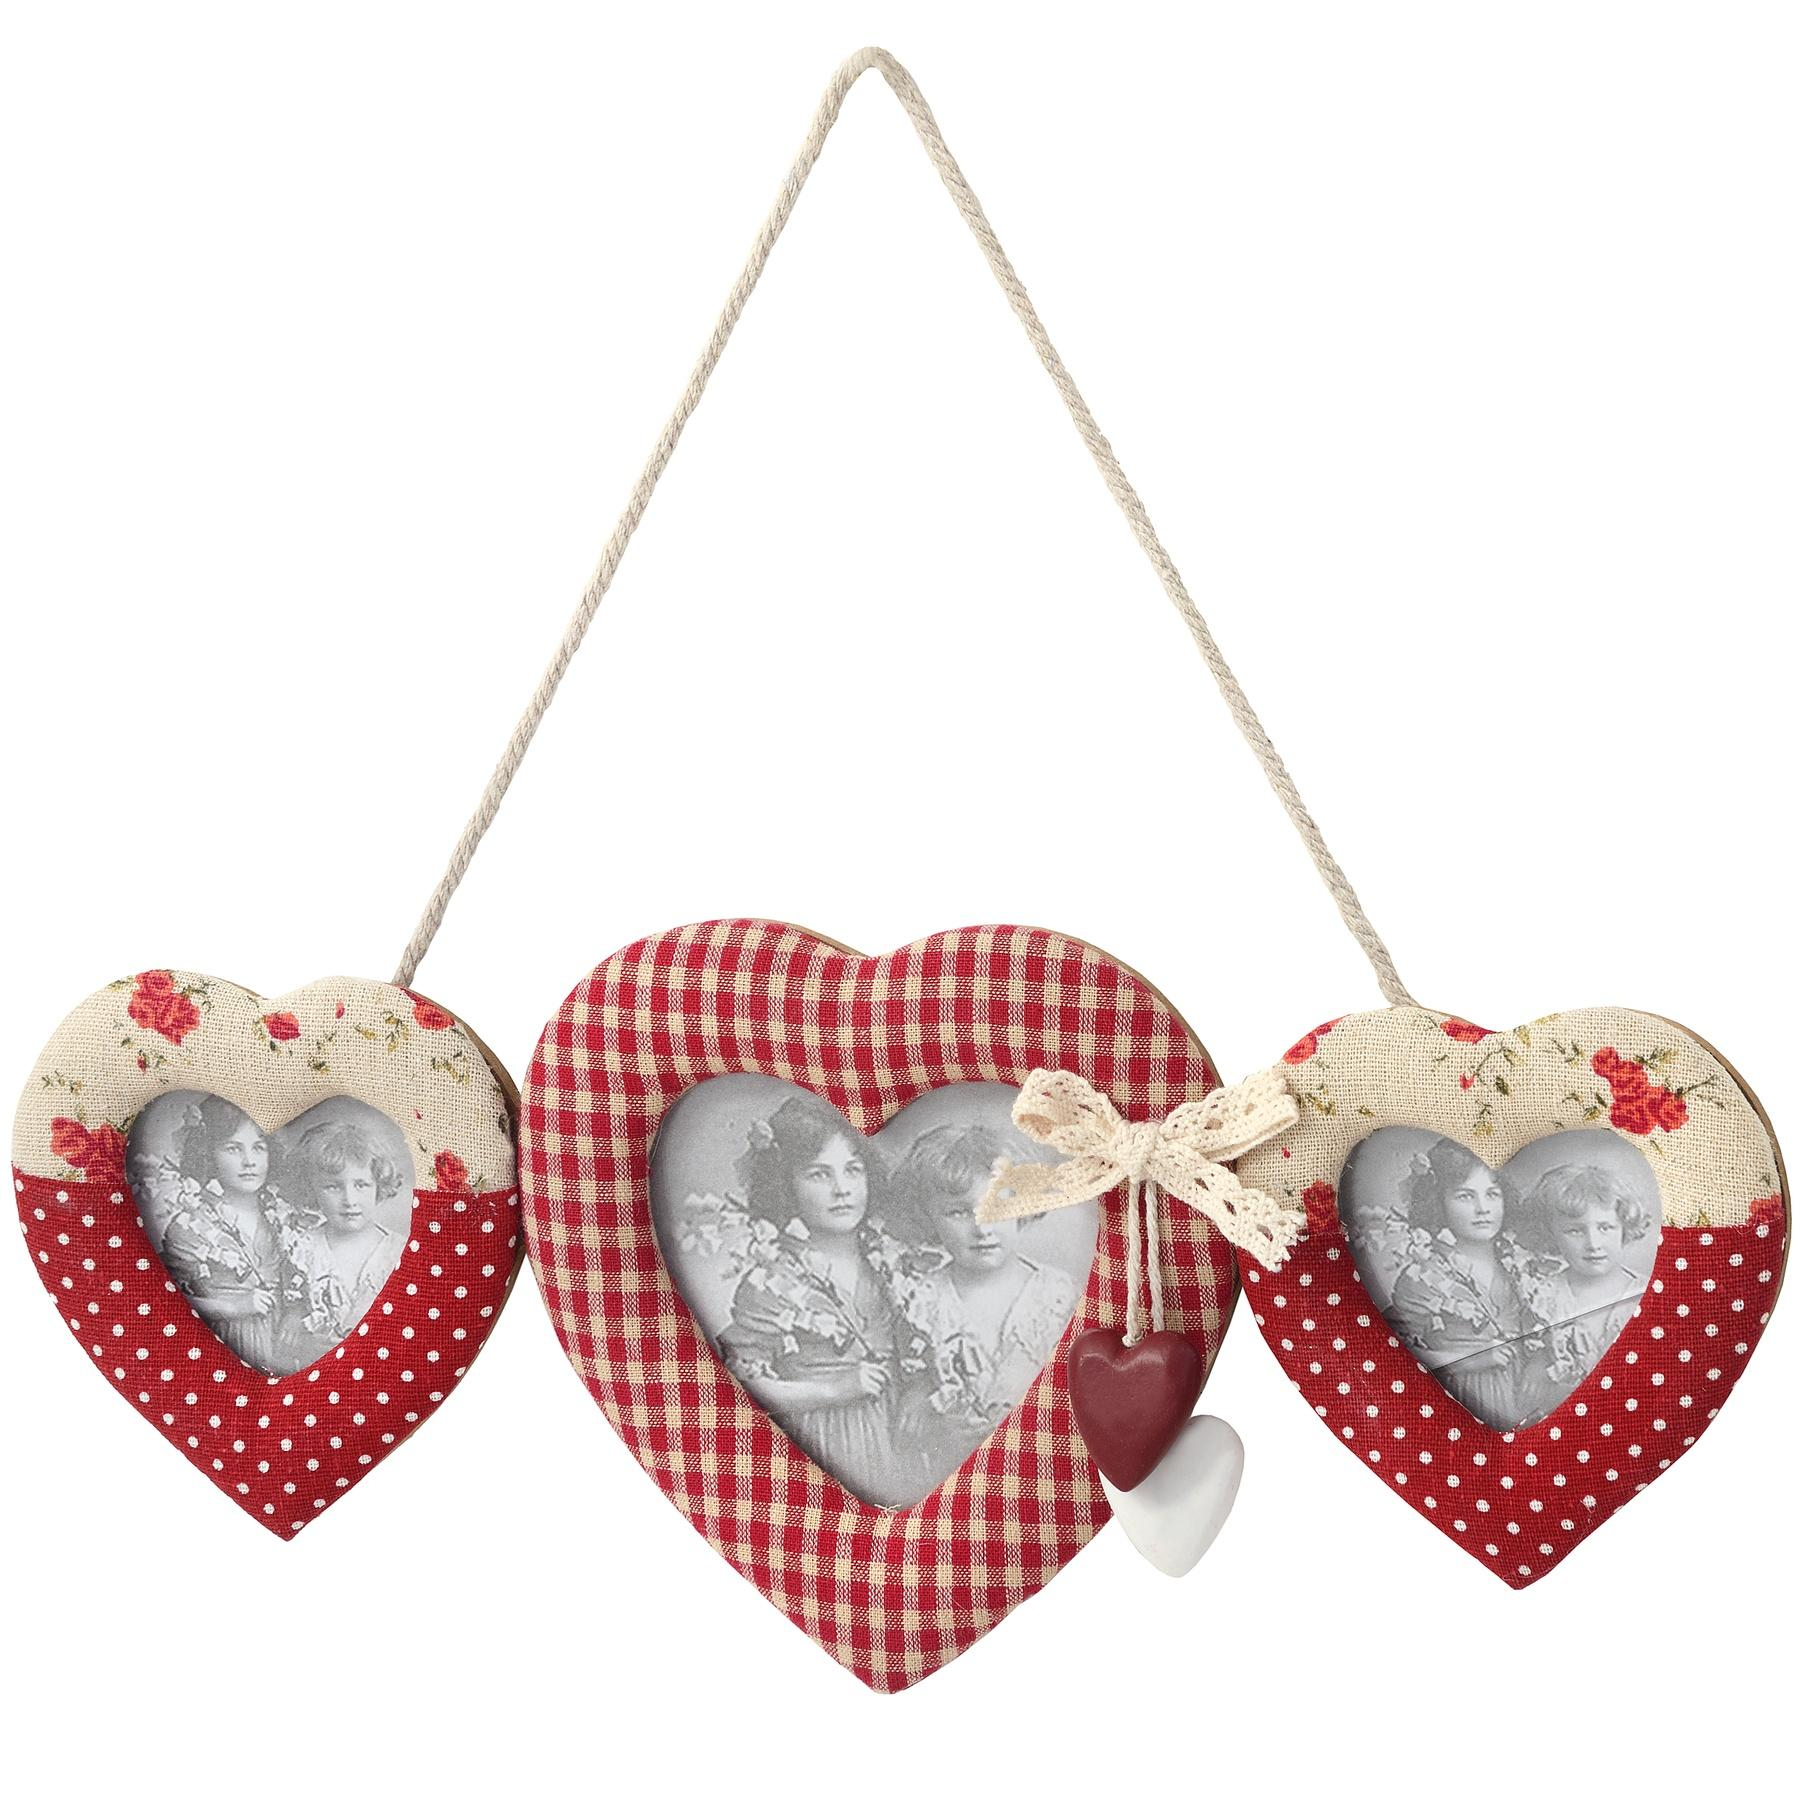 Hanging triple heart photo frame